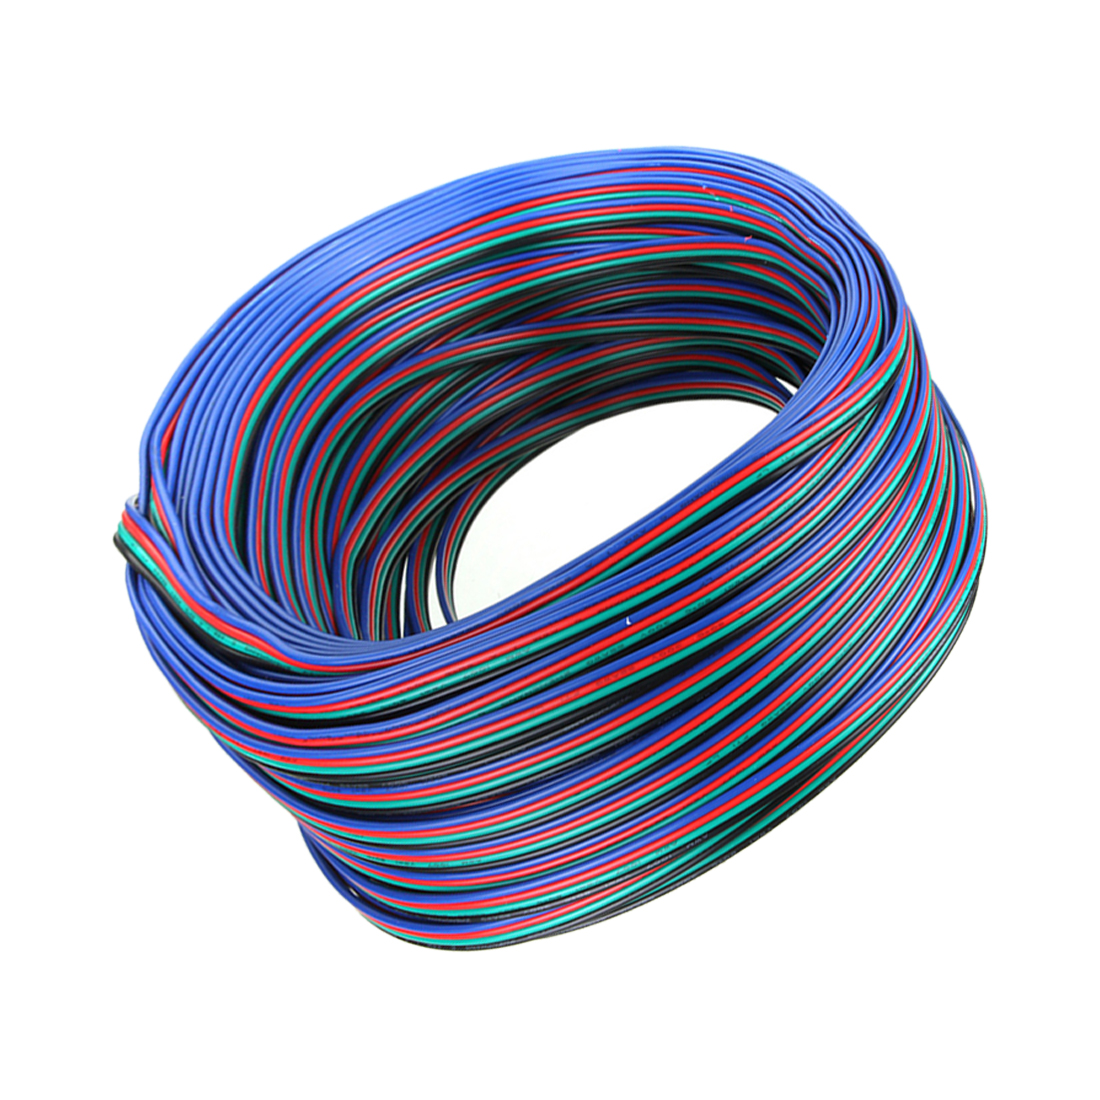 10m 20m 30m 50m 100m 4 Pin Channels LED RGB cable for 5050 3528 LED RGBW Strip Extension Extend Wire Cord Connector 1m 2m 5m 30cm 4 pin rgb led connector extension cable cord wire with 4pin connector for rgb led strip light free shipping